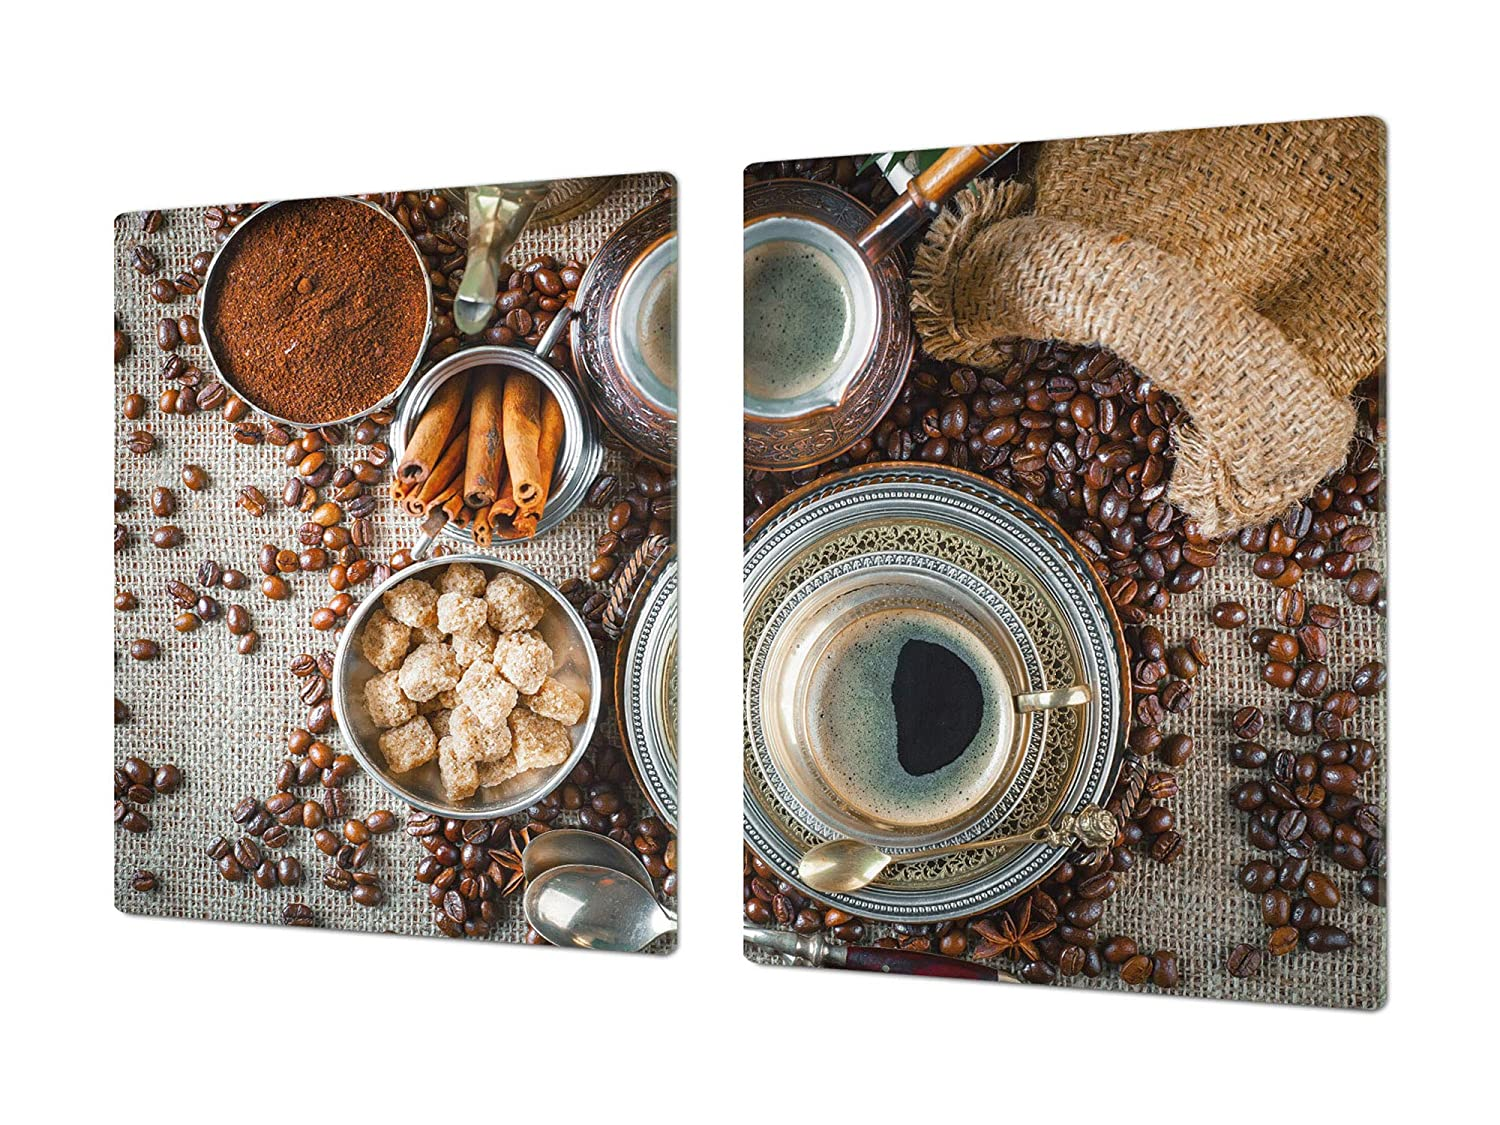 Coffee 9 2x40x52 HUGE Cutting Board – Worktop saver and Pastry Board – Scratch & Shatter Resistant Glass Kitchen Board; MEASURES  SINGLE  80 x 52 cm (31,5  x 20,47 ); DOUBLE  40 x 52 cm (15,75  x 20,47 ); Coffee series DD07